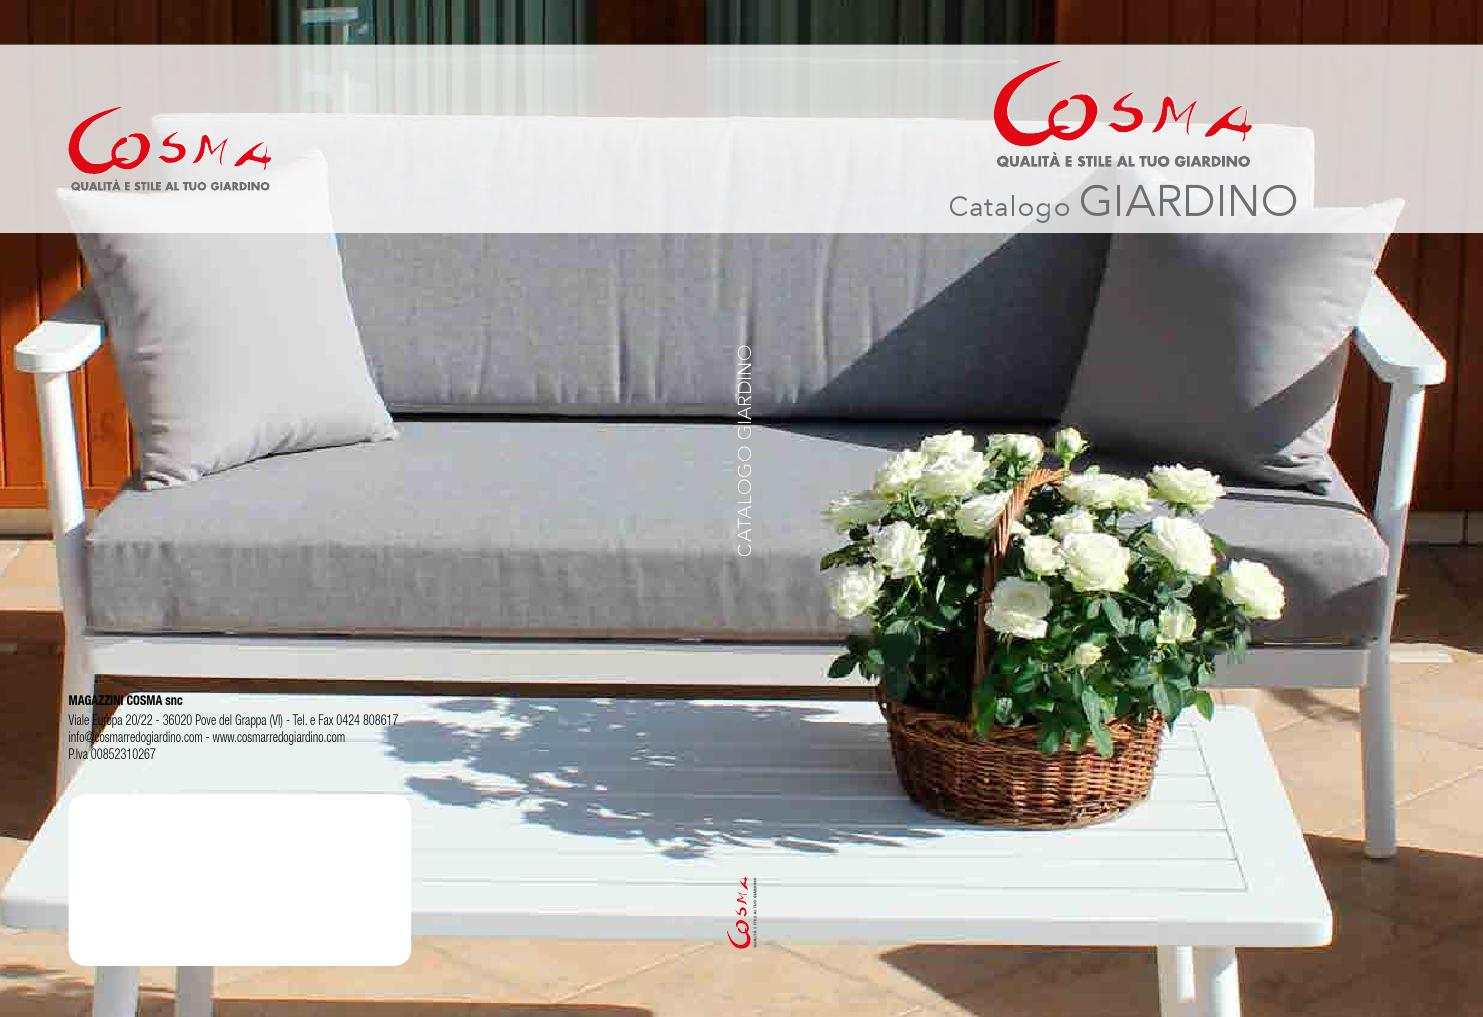 Catalogo 2016 giardino by cosma center sas issuu for Catalogo giardino